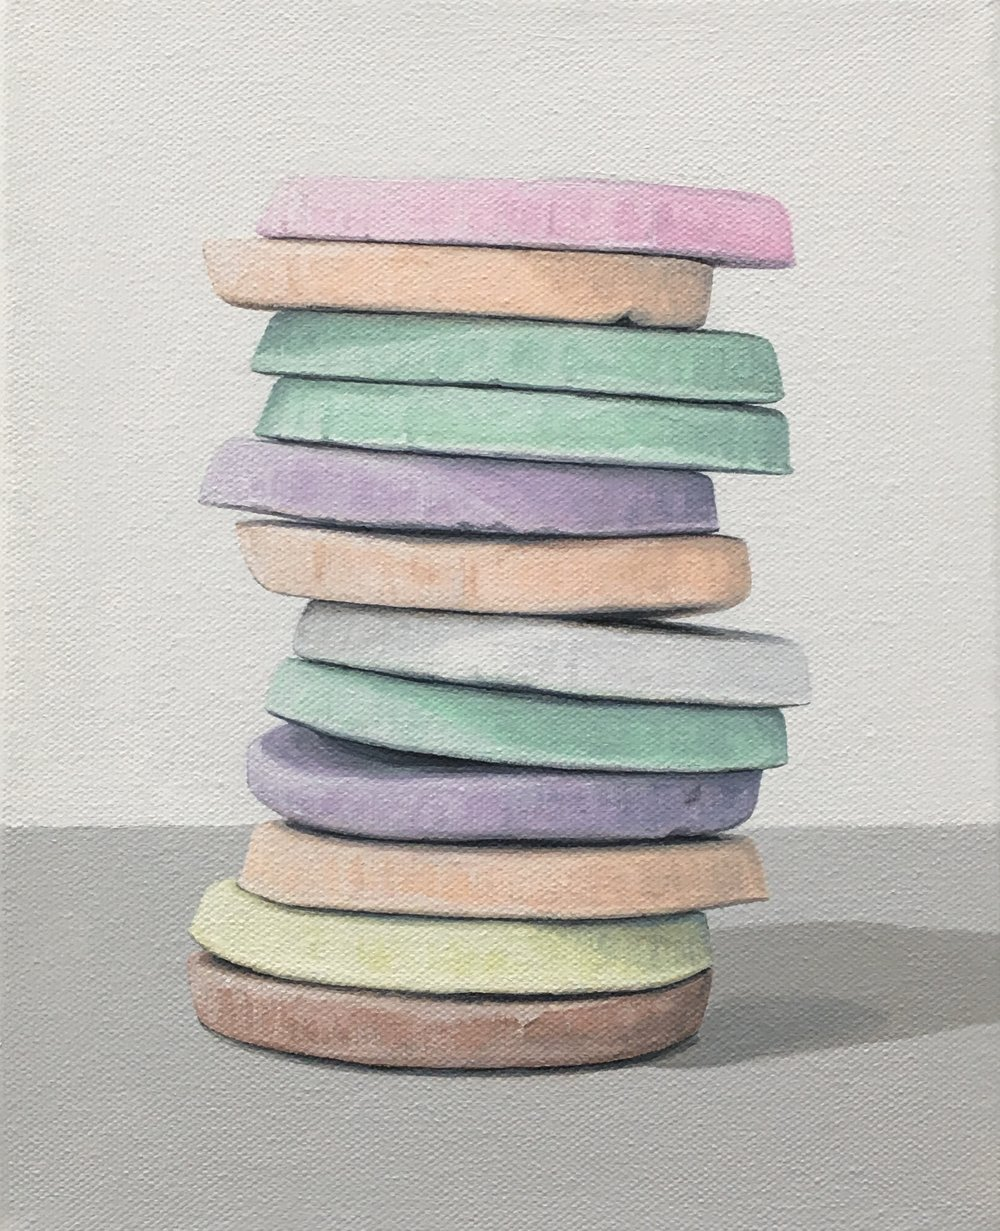 """Totem: Necco Wafer IV  This little candy stacks is built from 'An American Classic' candy, the Necco Wafer. As a culture we are generally attracted to these charming colors, but once the candy is experienced as a food there is often a mismatch between its attractiveness and its taste. This work explores the occurrence of the incongruity of appearance and experience.  8"""" x 10"""" gallery wrapped canvas  $250.00"""